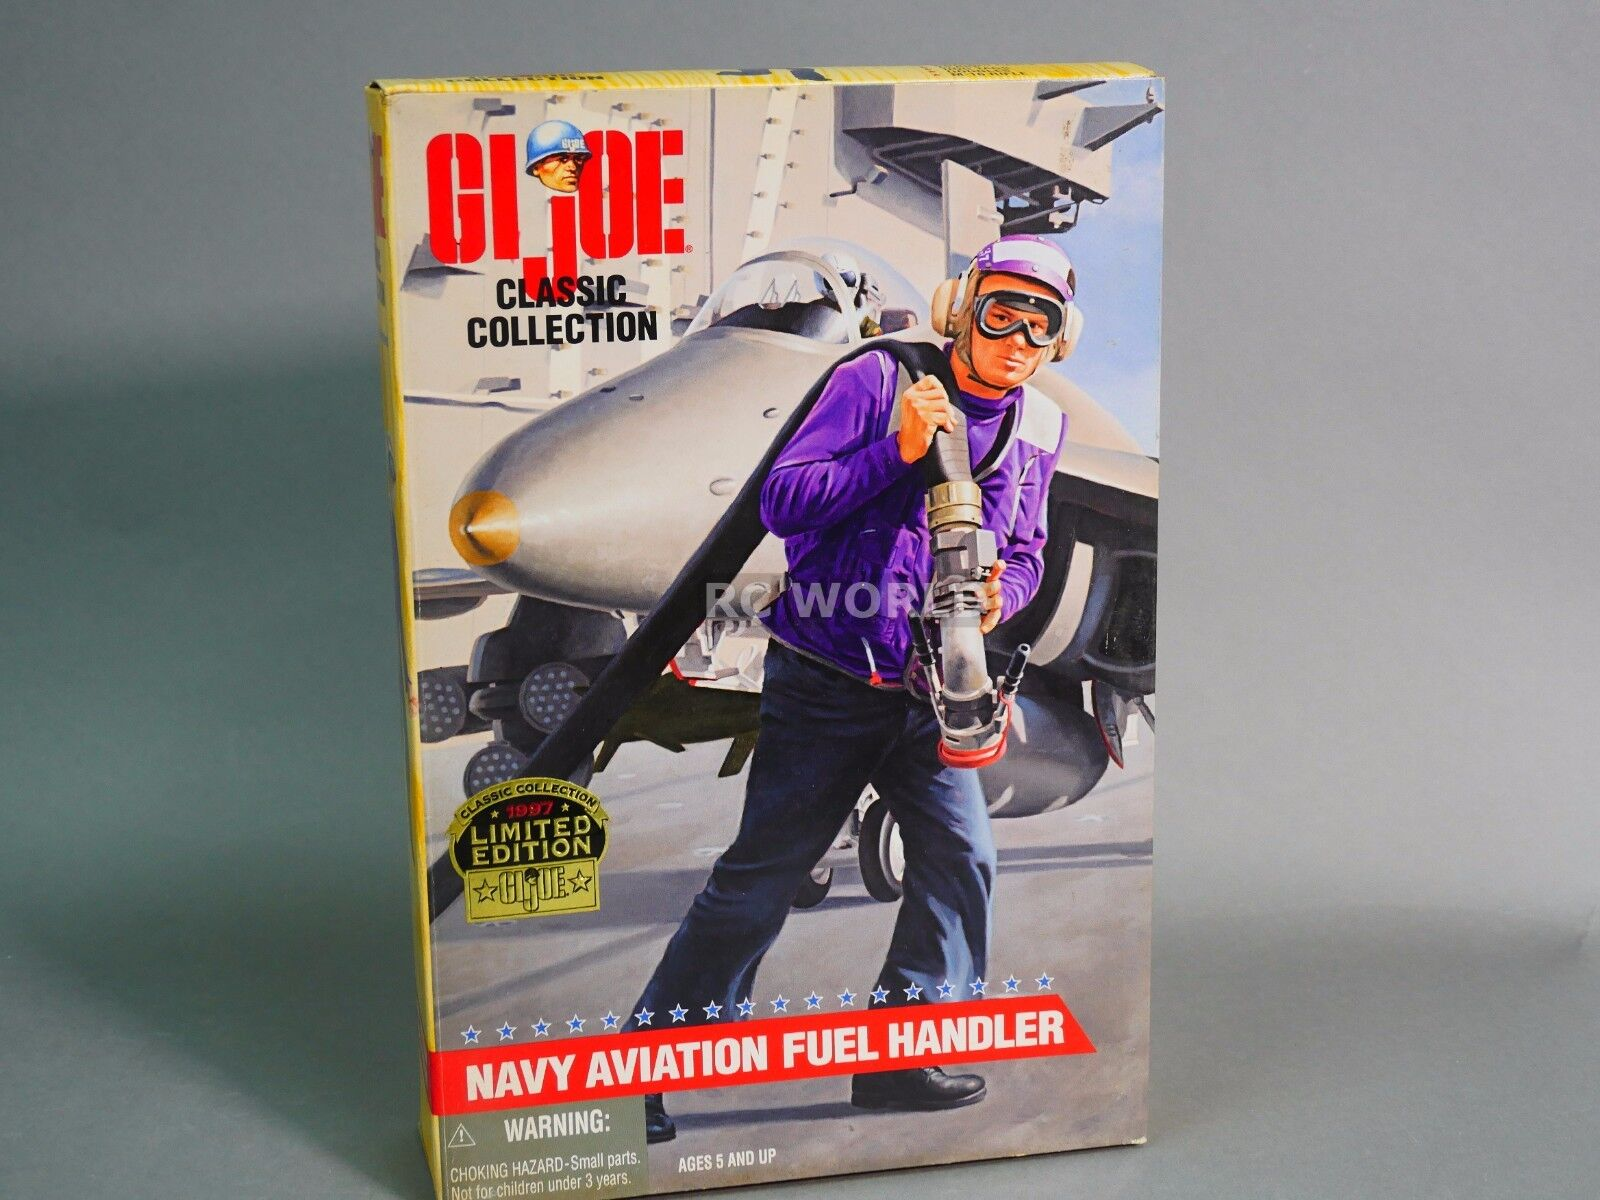 Vintage G.I JOE Classic Classic Classic Collection NAVY FUEL HANDLER  GRAPES  SOLDIER 12   rk2 2cd2e0